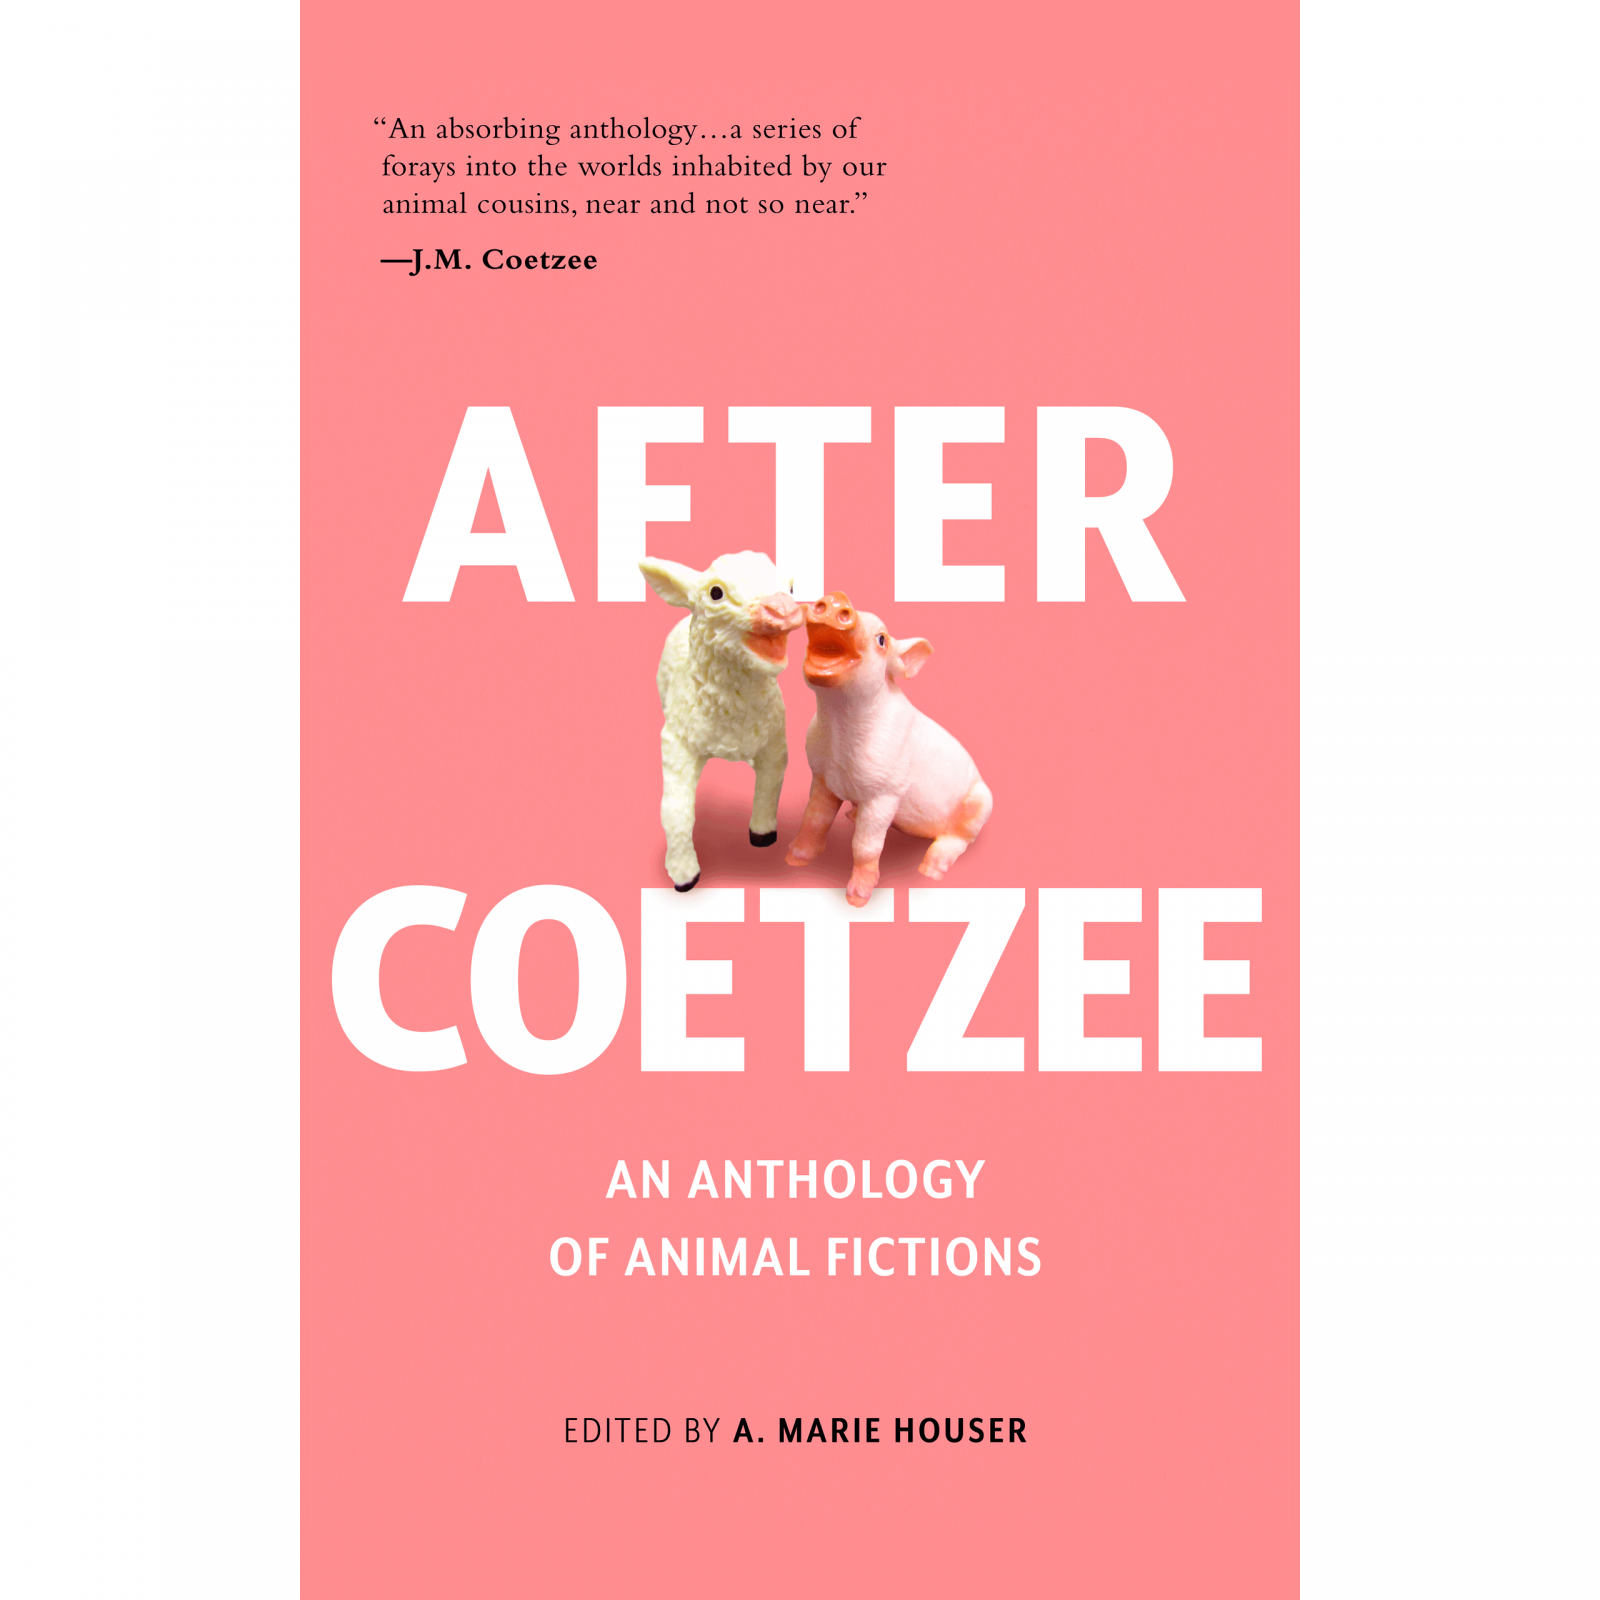 After Coetzee Paperback Product Image